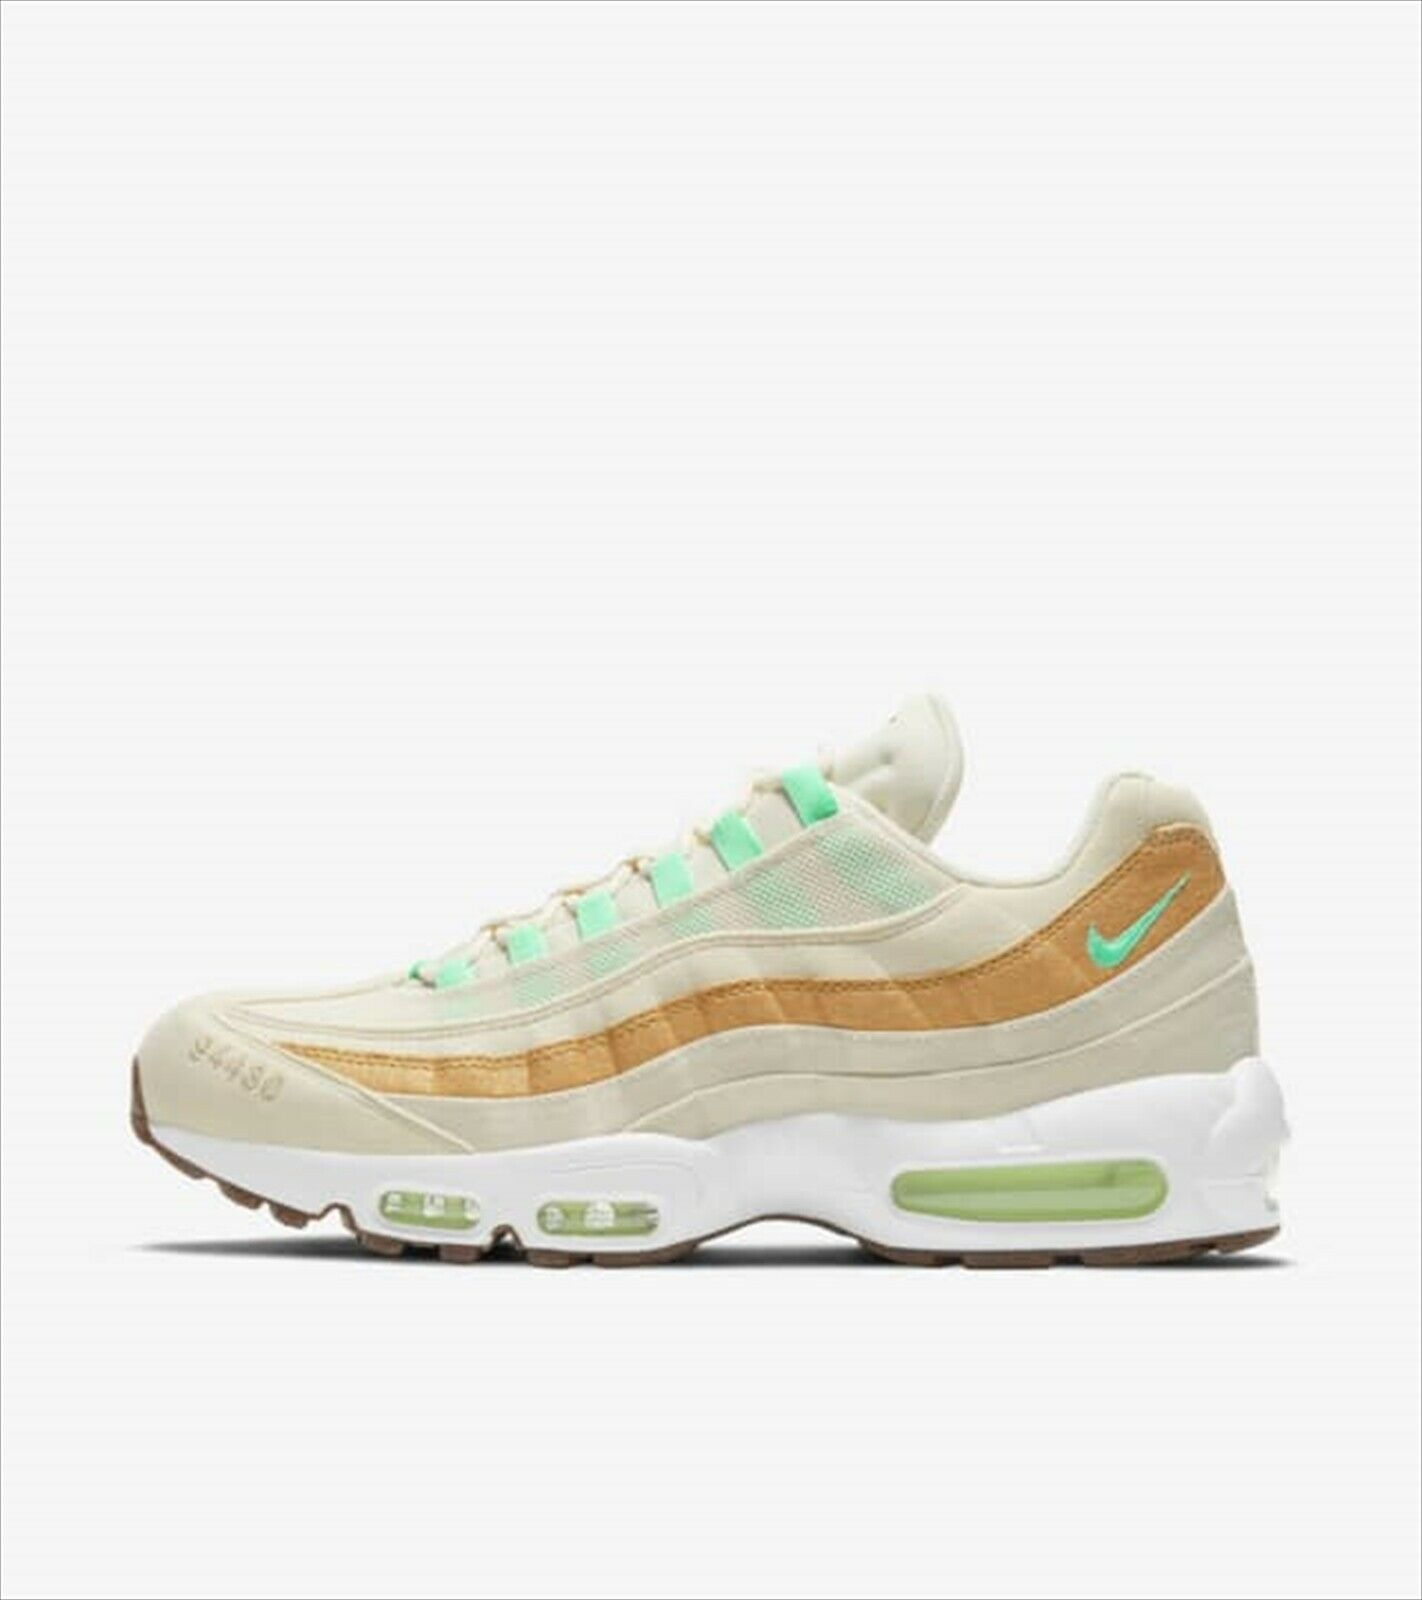 Size 12 - Nike Air Max 95 Happy Pineapple for sale online | eBay